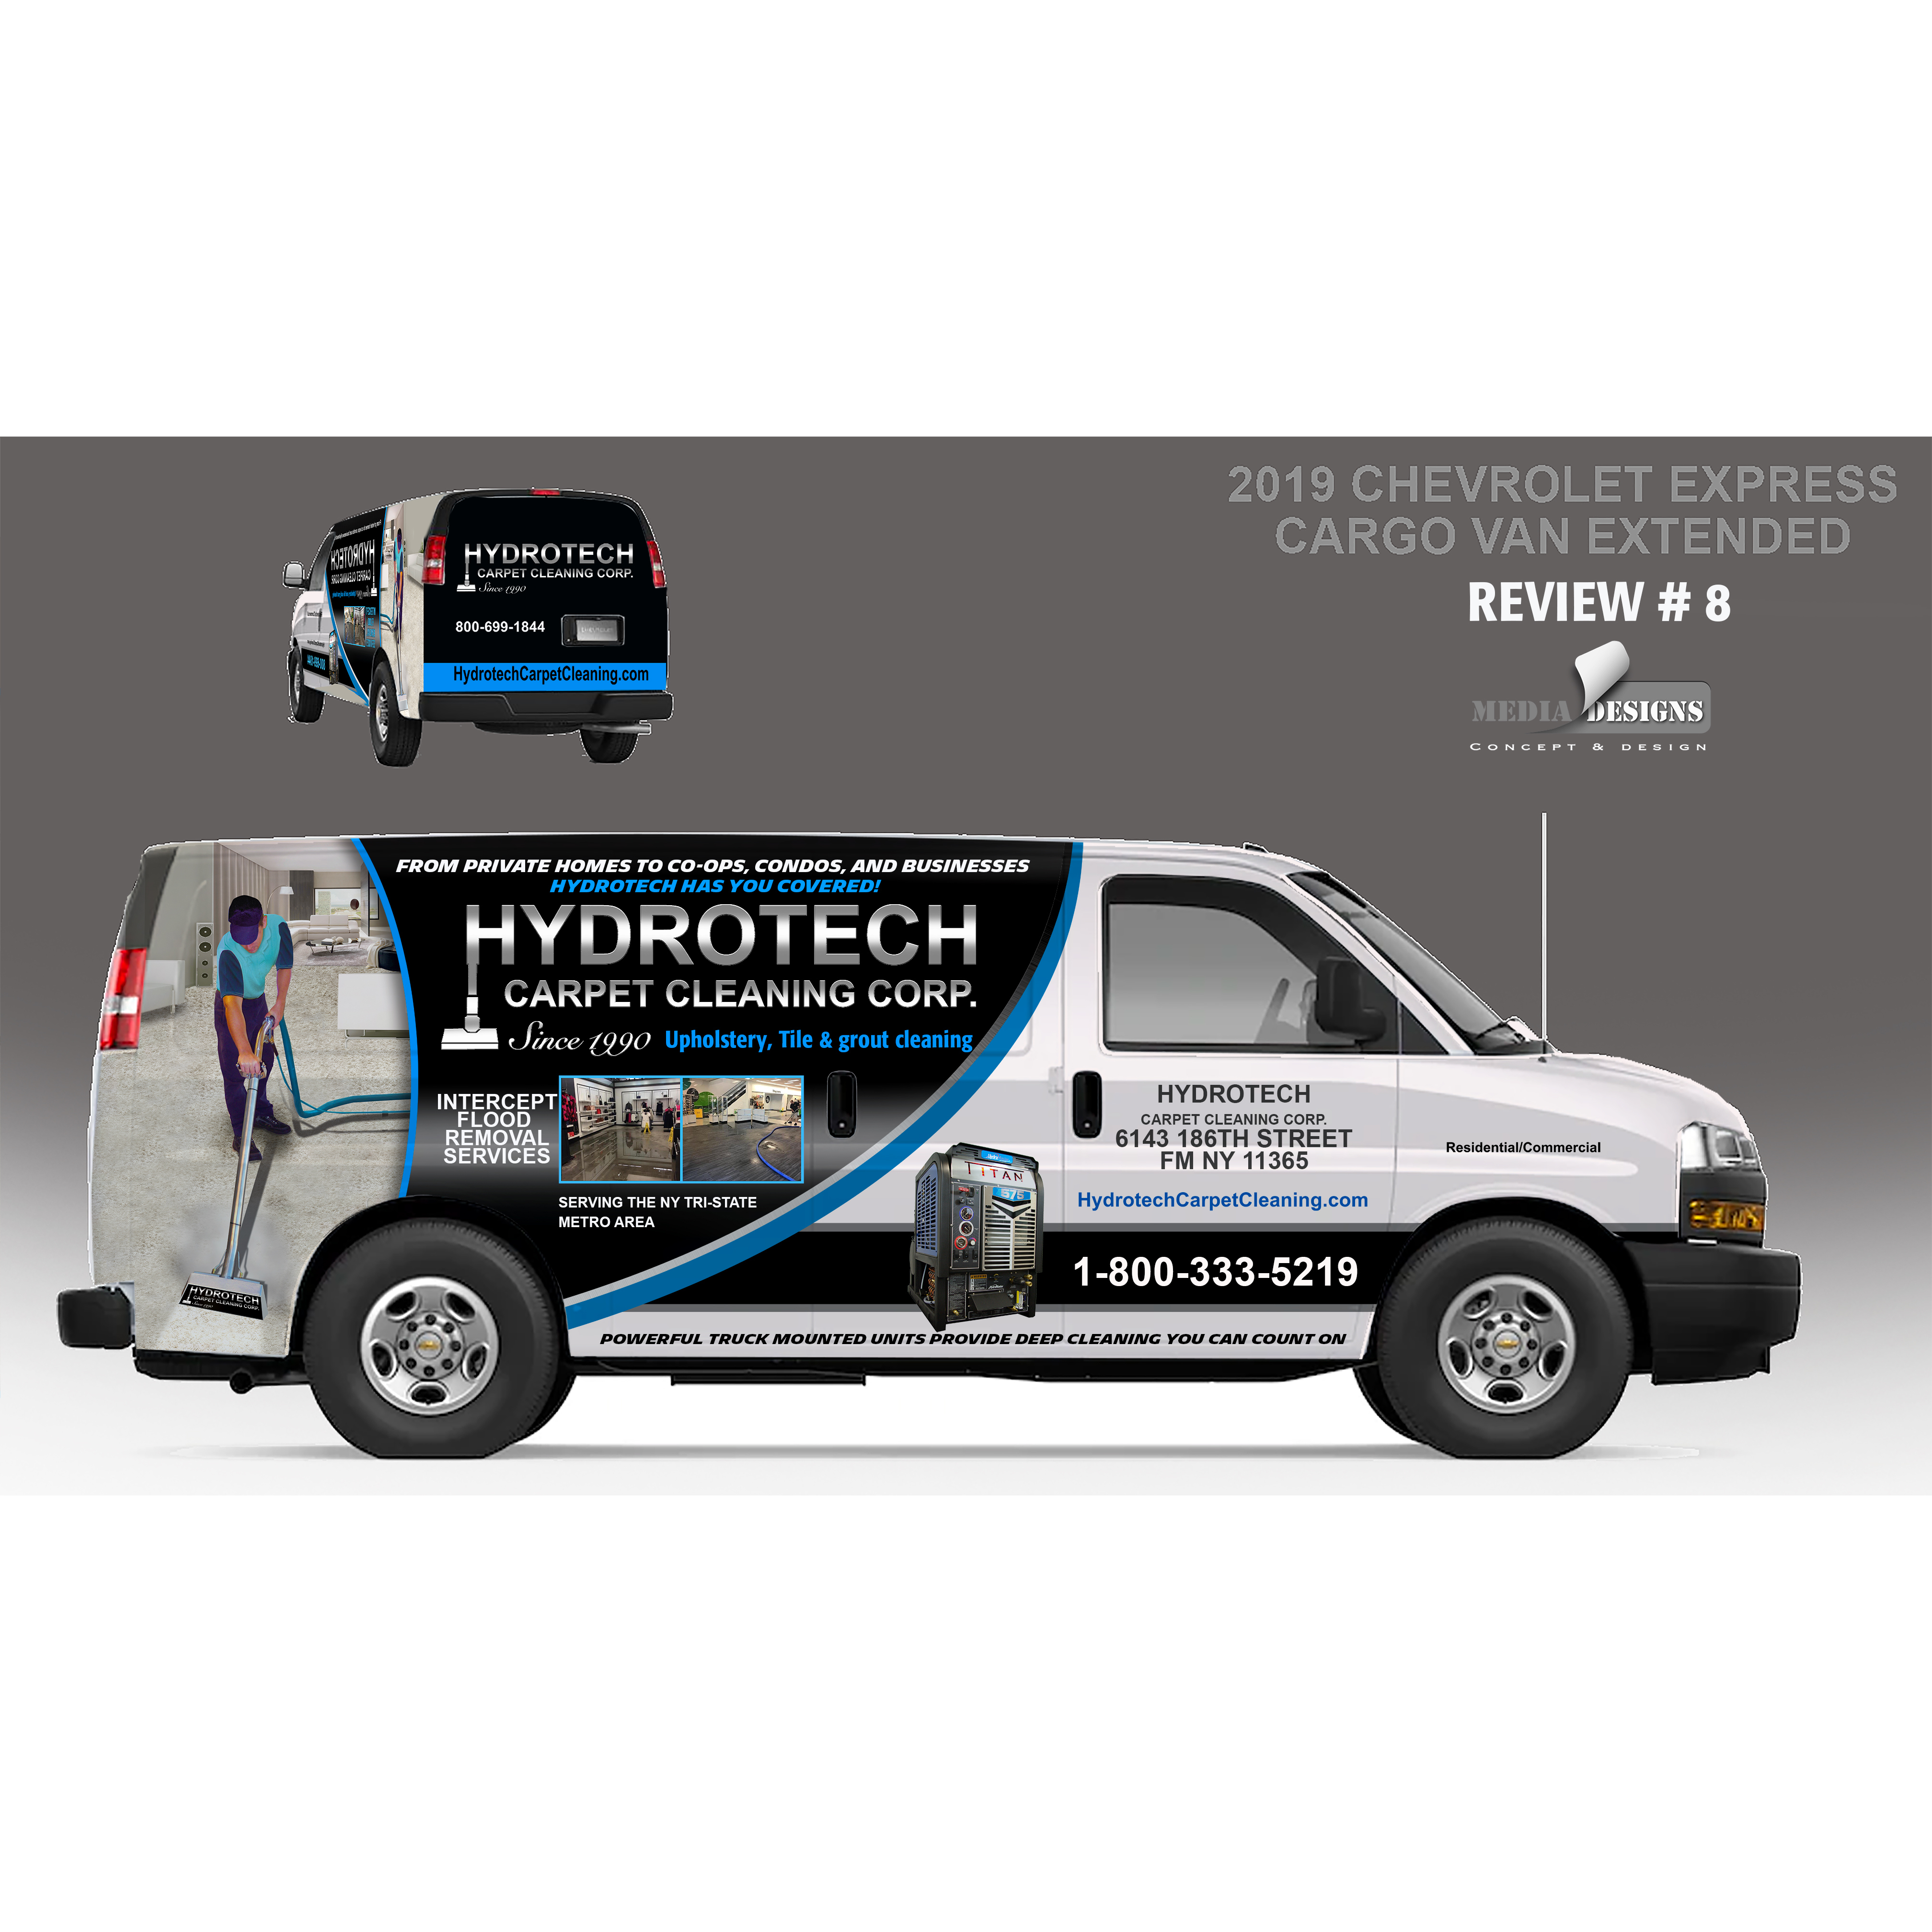 Hydrotech Carpet Cleaning Corp.